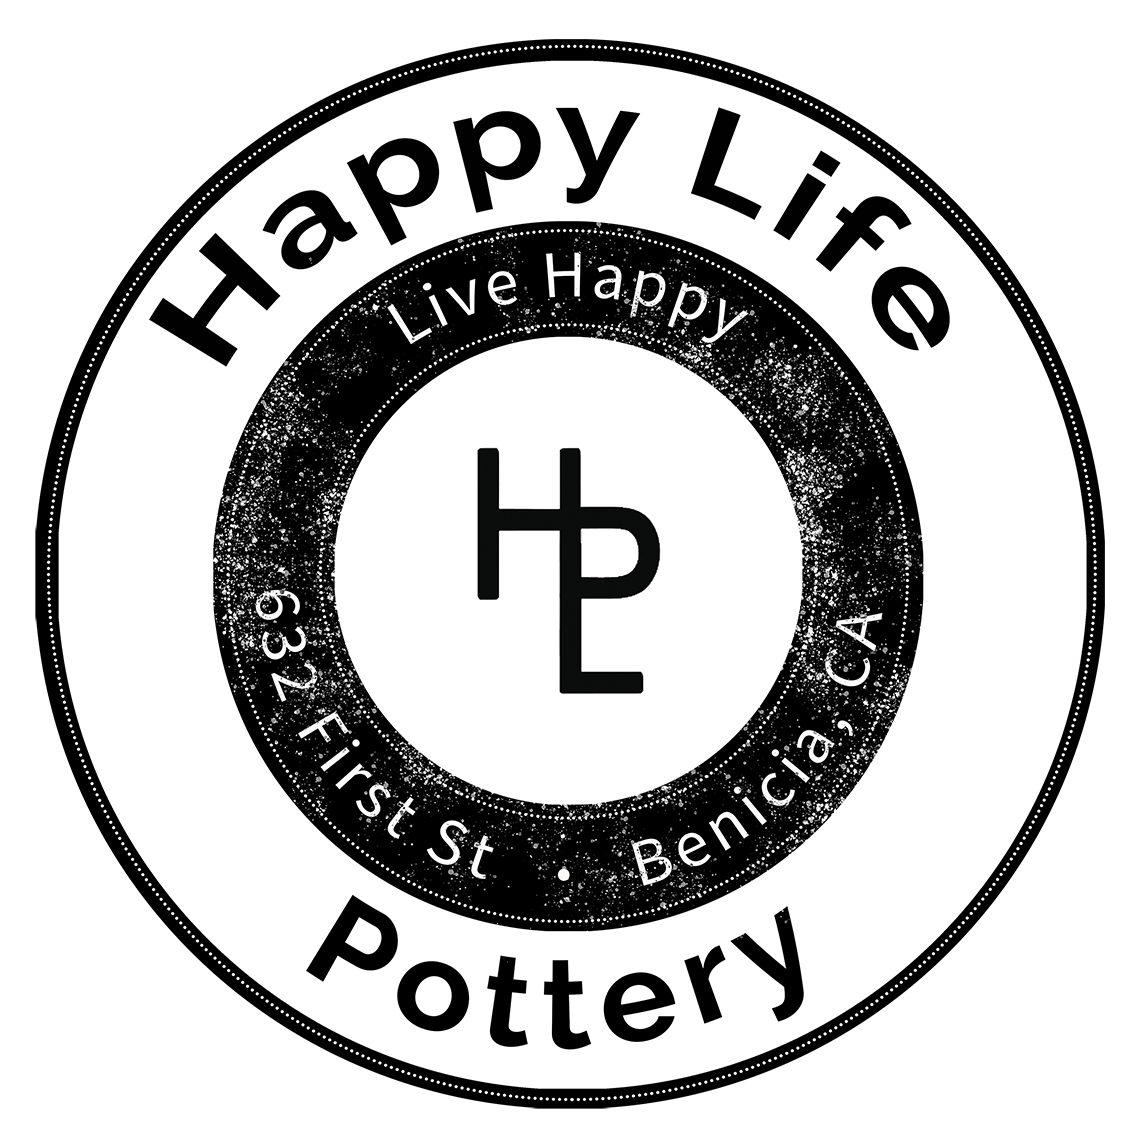 Happy Life Pottery